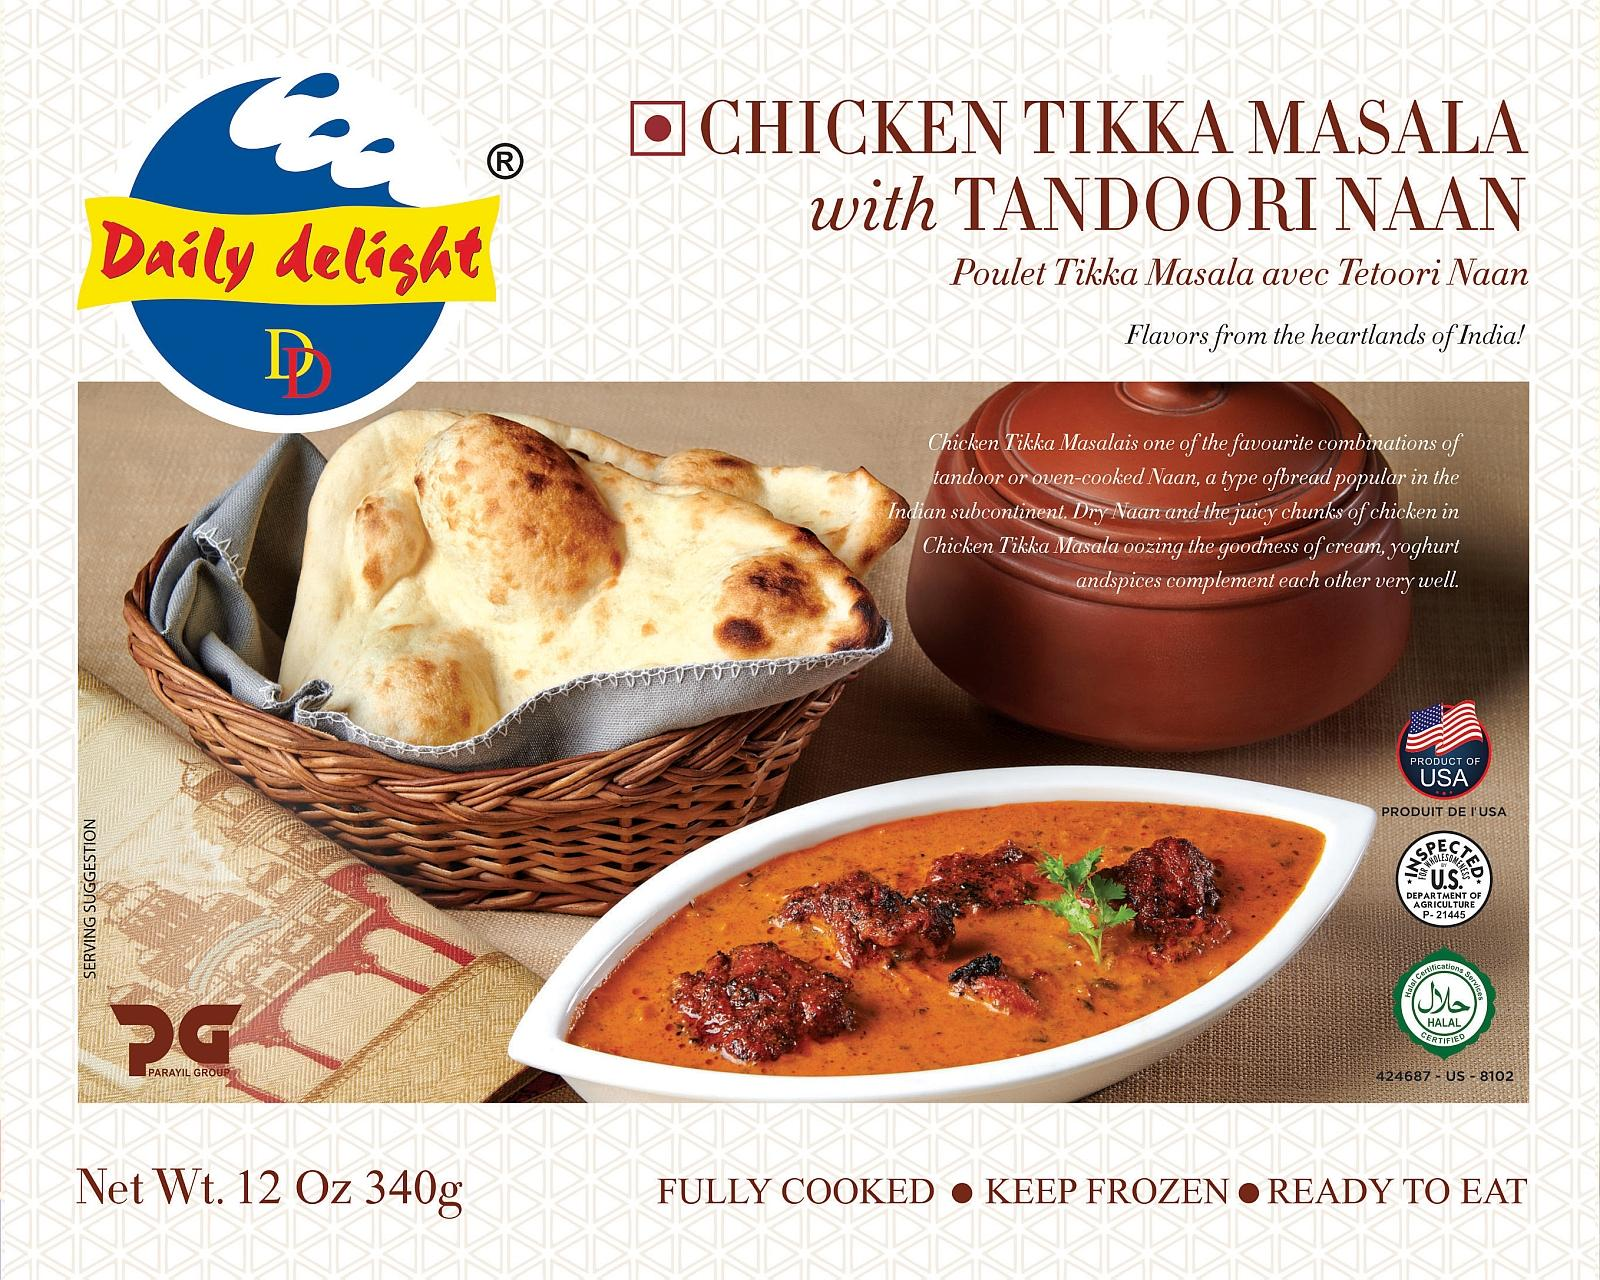 Daily Delight Chicken Tikka Masala with Tandoori Naan